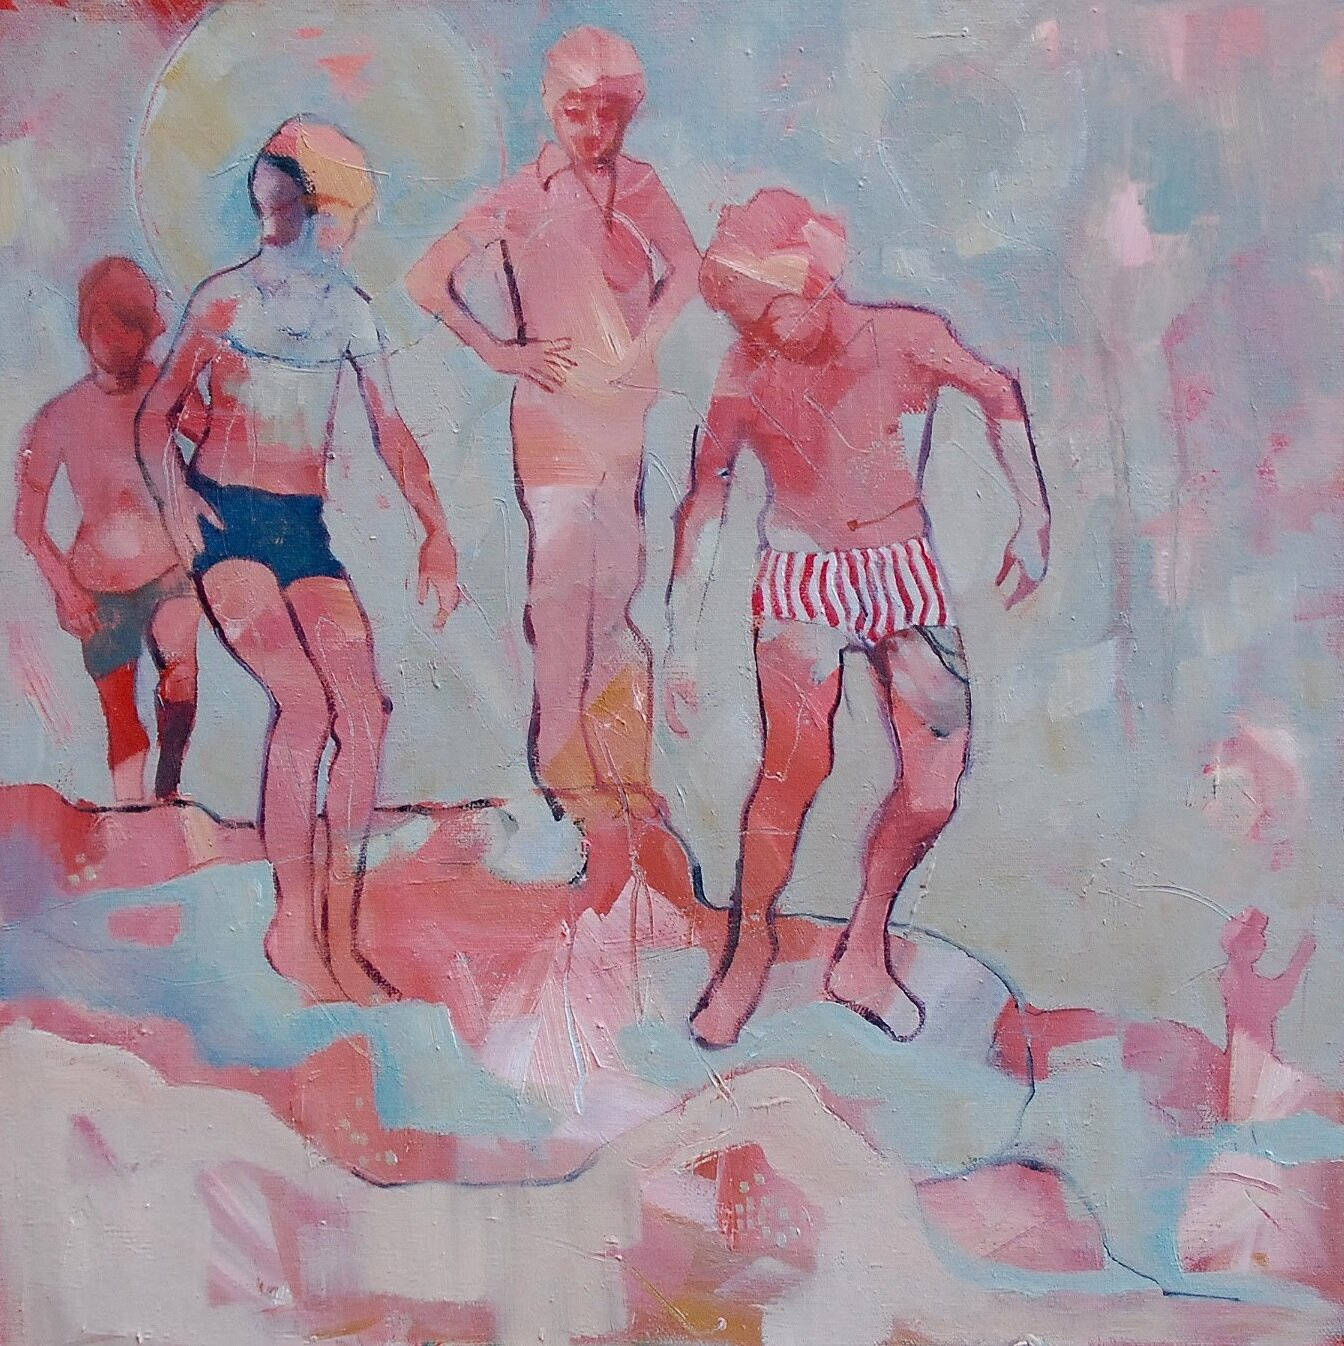 Artist: Amy Dury  Title: Scottish Swimmers  Size: 50 x 50 cm  Medium: Oil on canvas  Price: £600